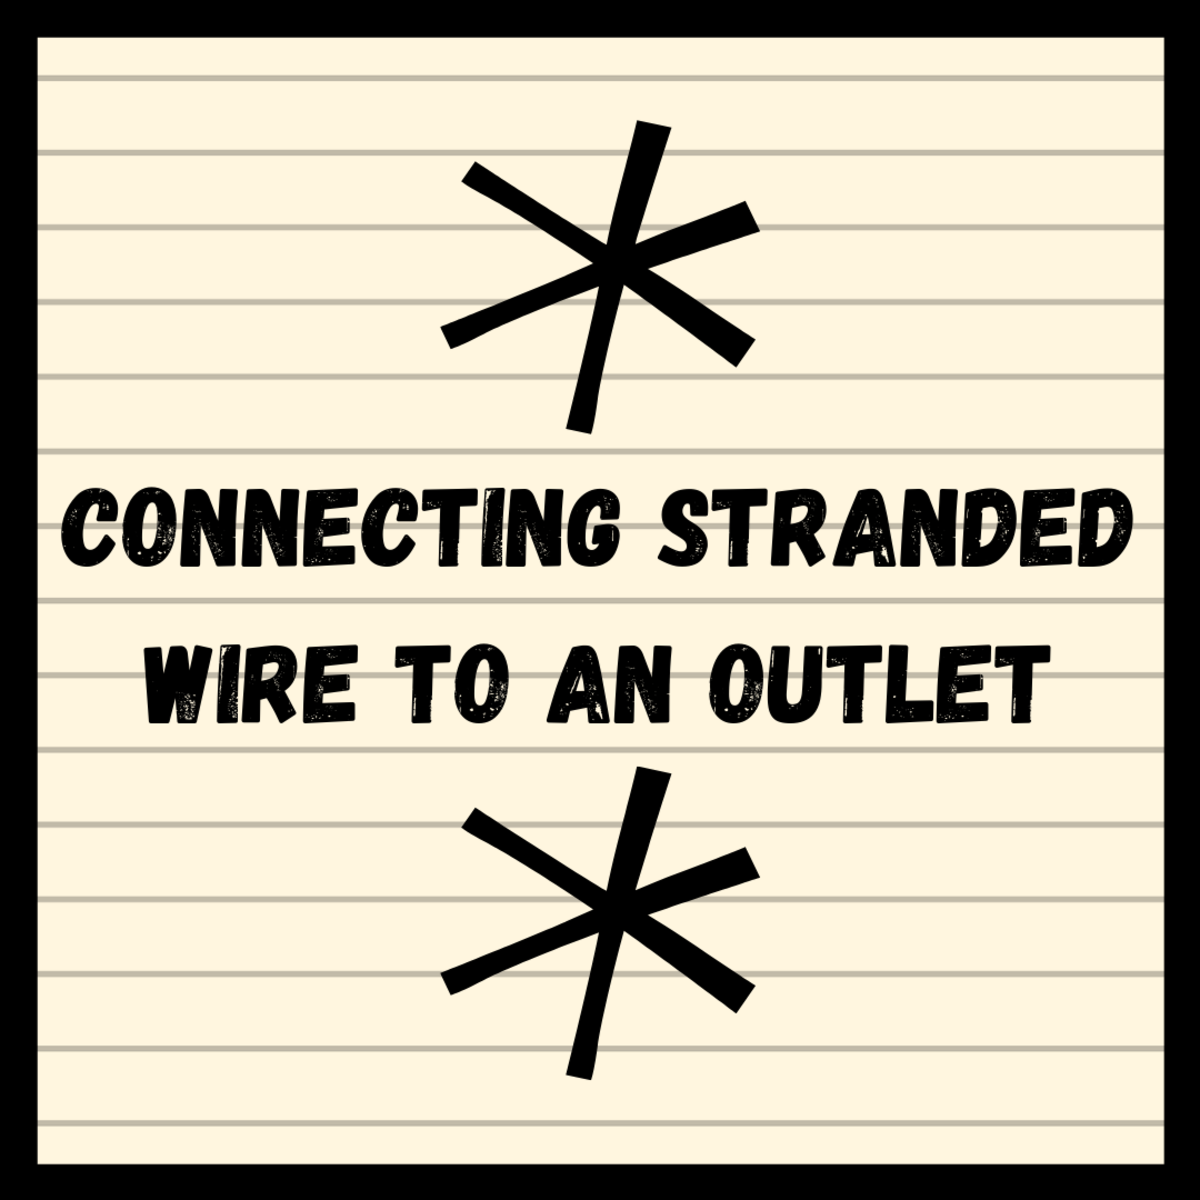 Connecting Stranded Wire to an Outlet